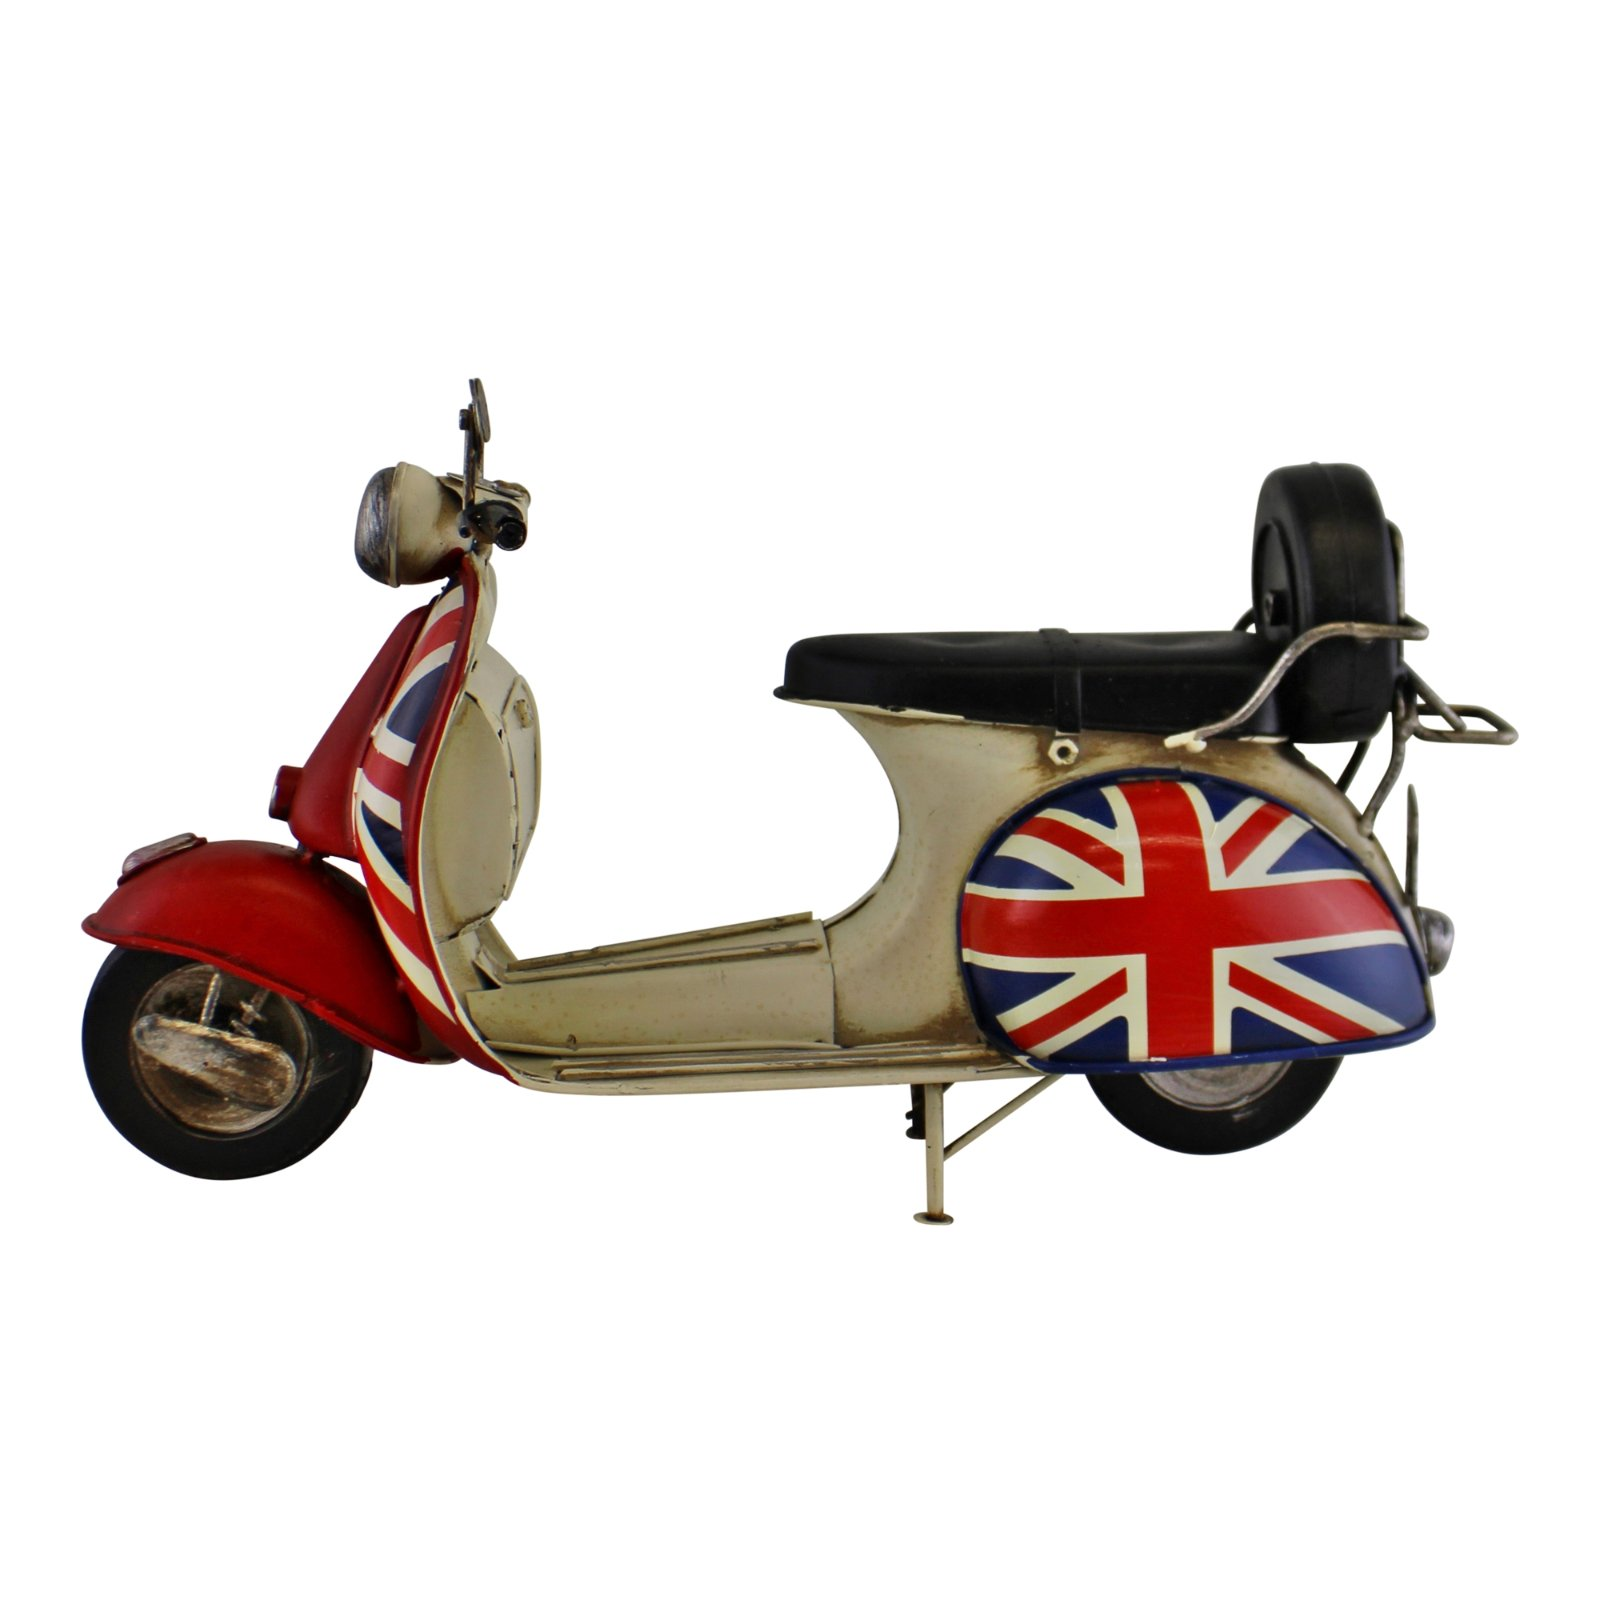 1960's Model Scooter from GiftSpider.co.uk